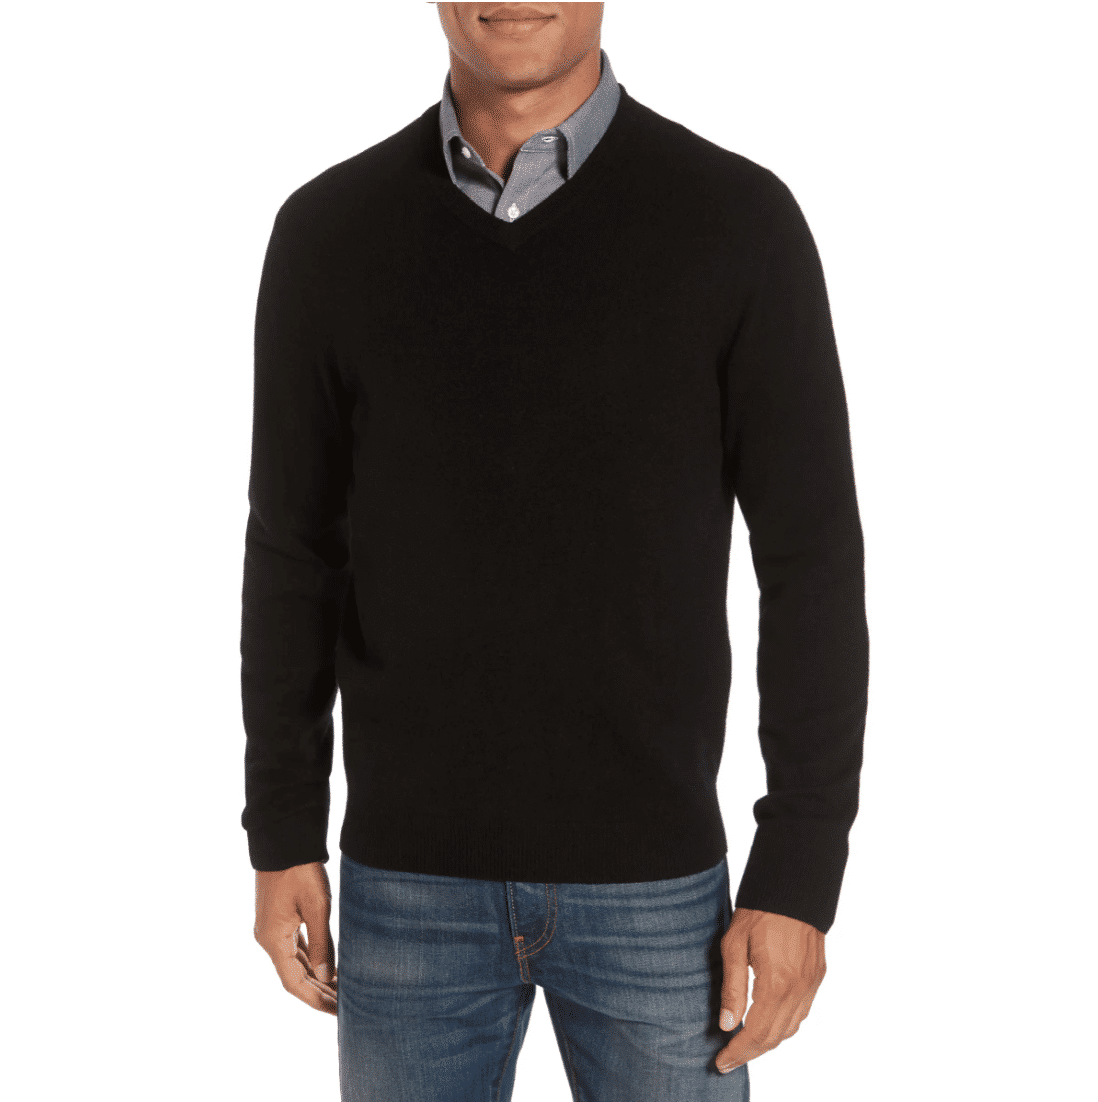 best gifts for him vneck sweater